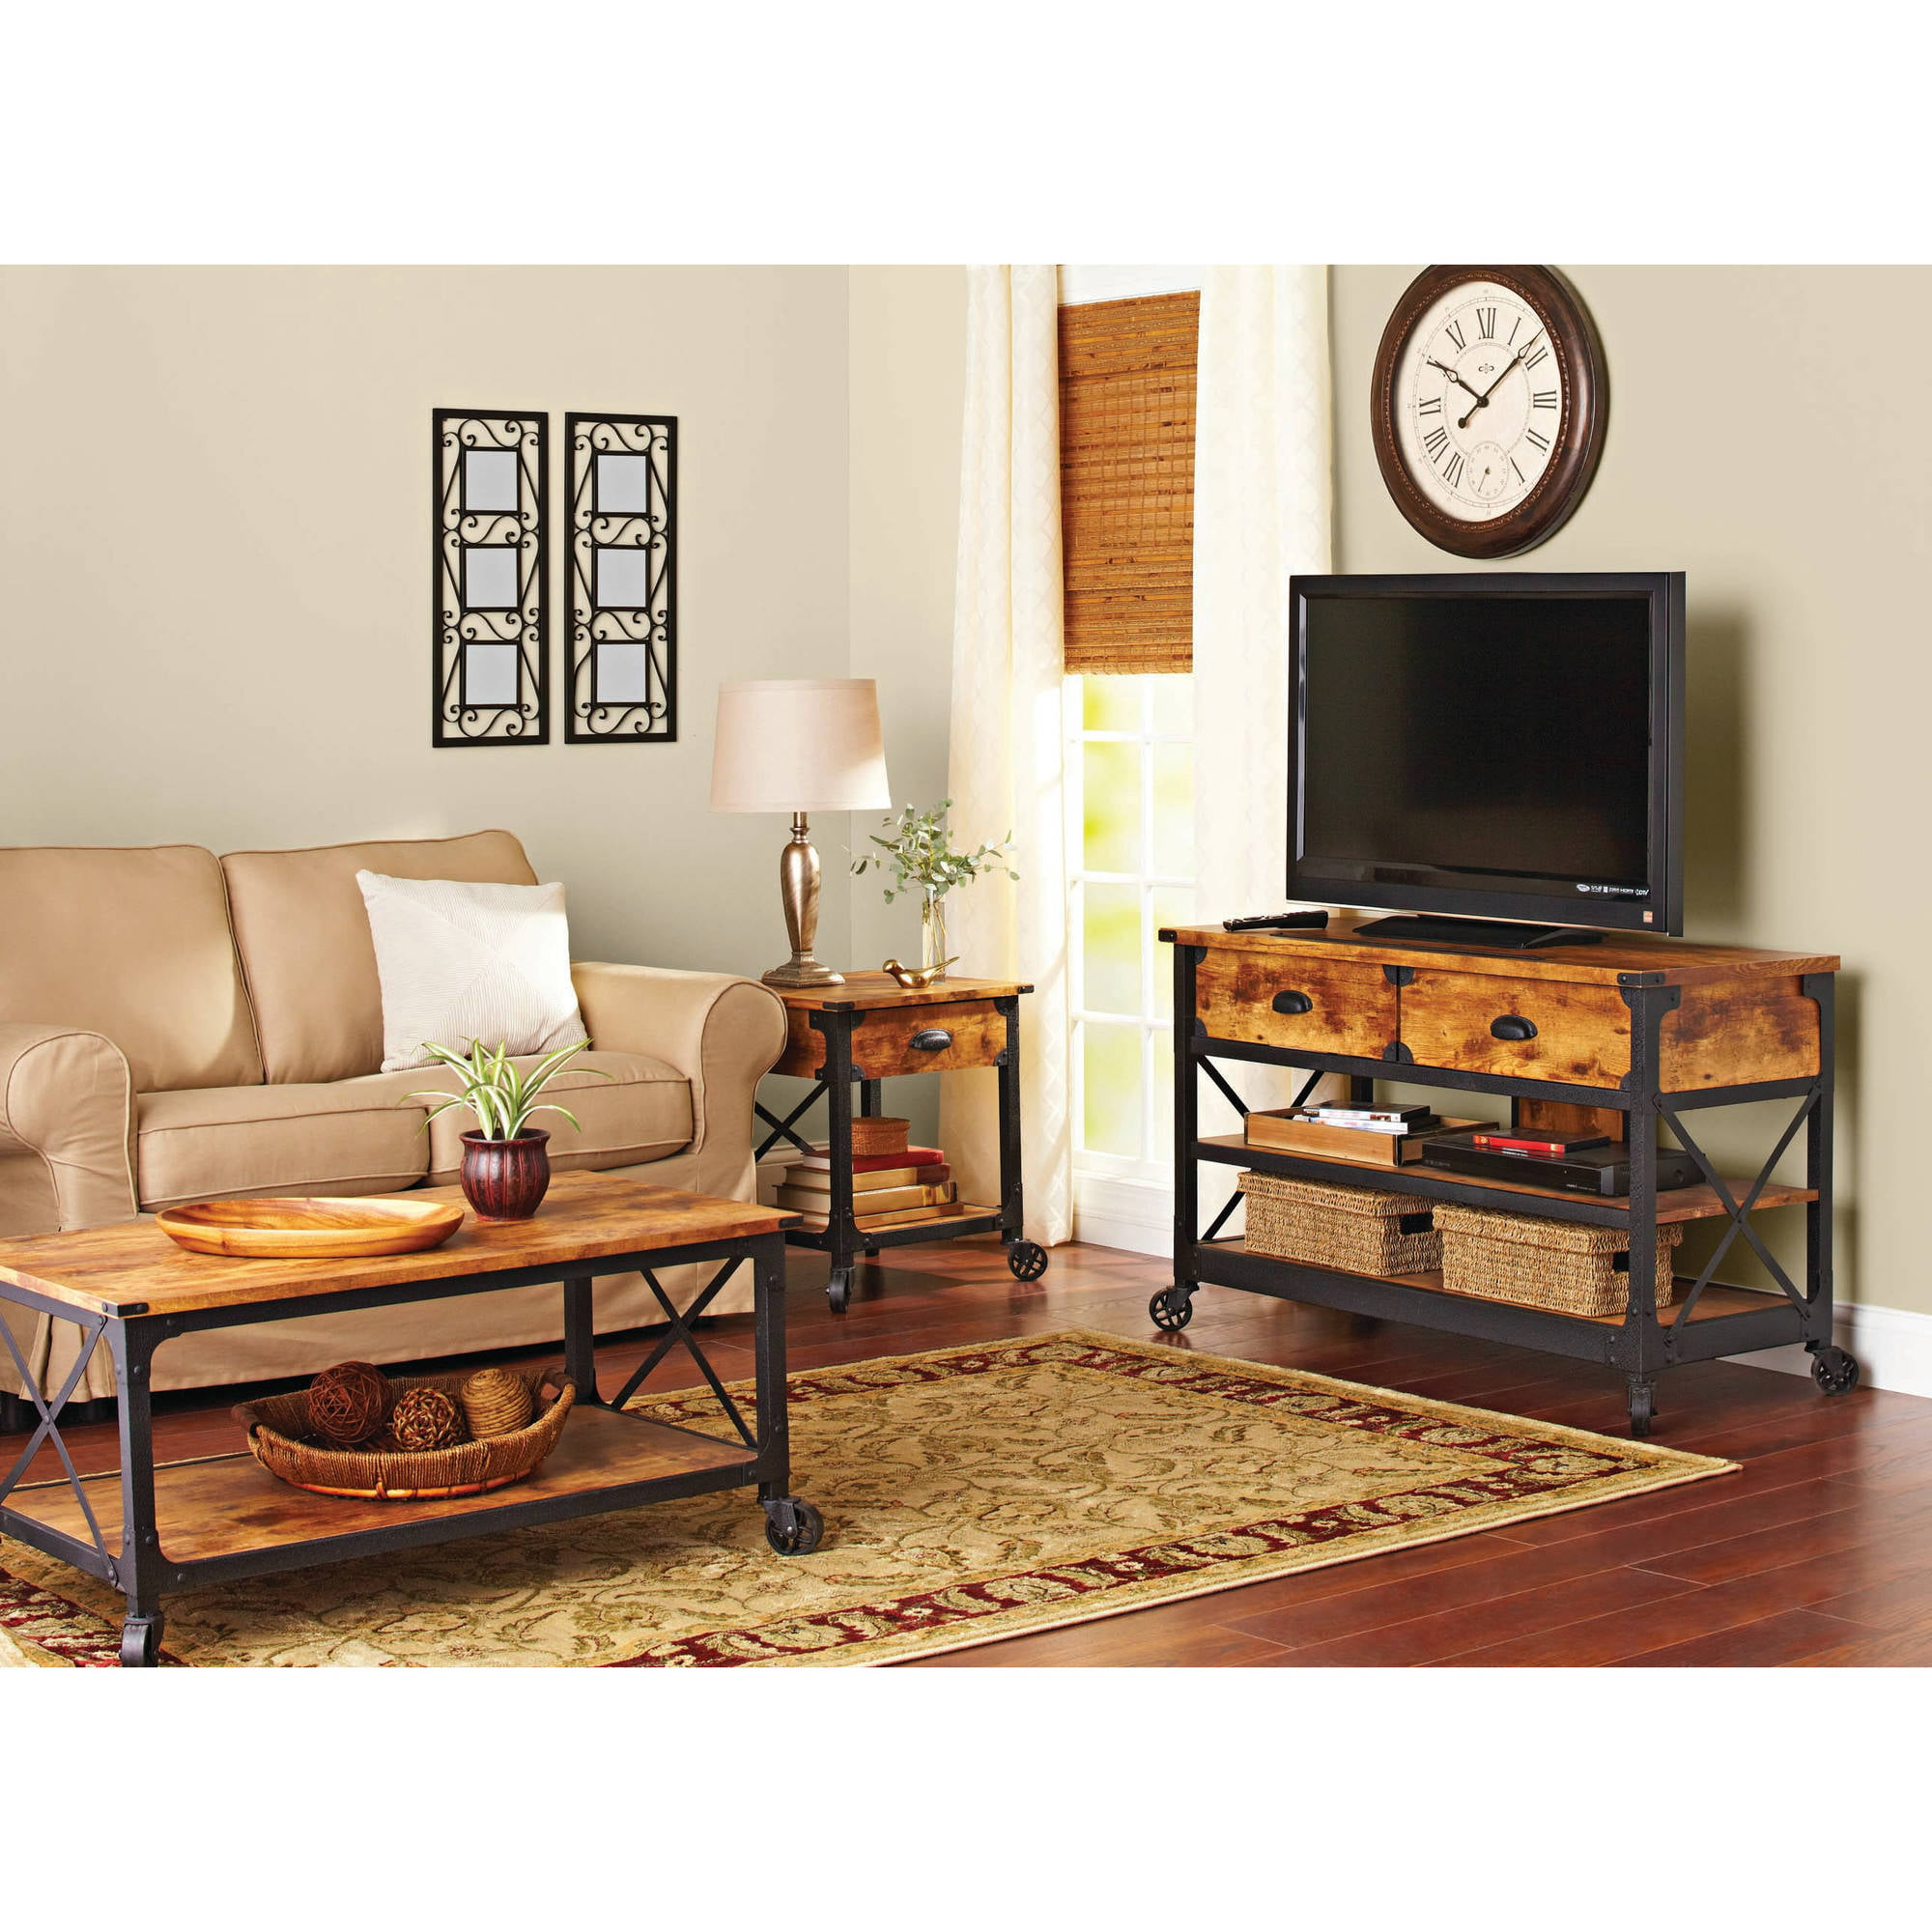 google furniture design work environment better homes and gardens rustic country furniture collection walmartcom